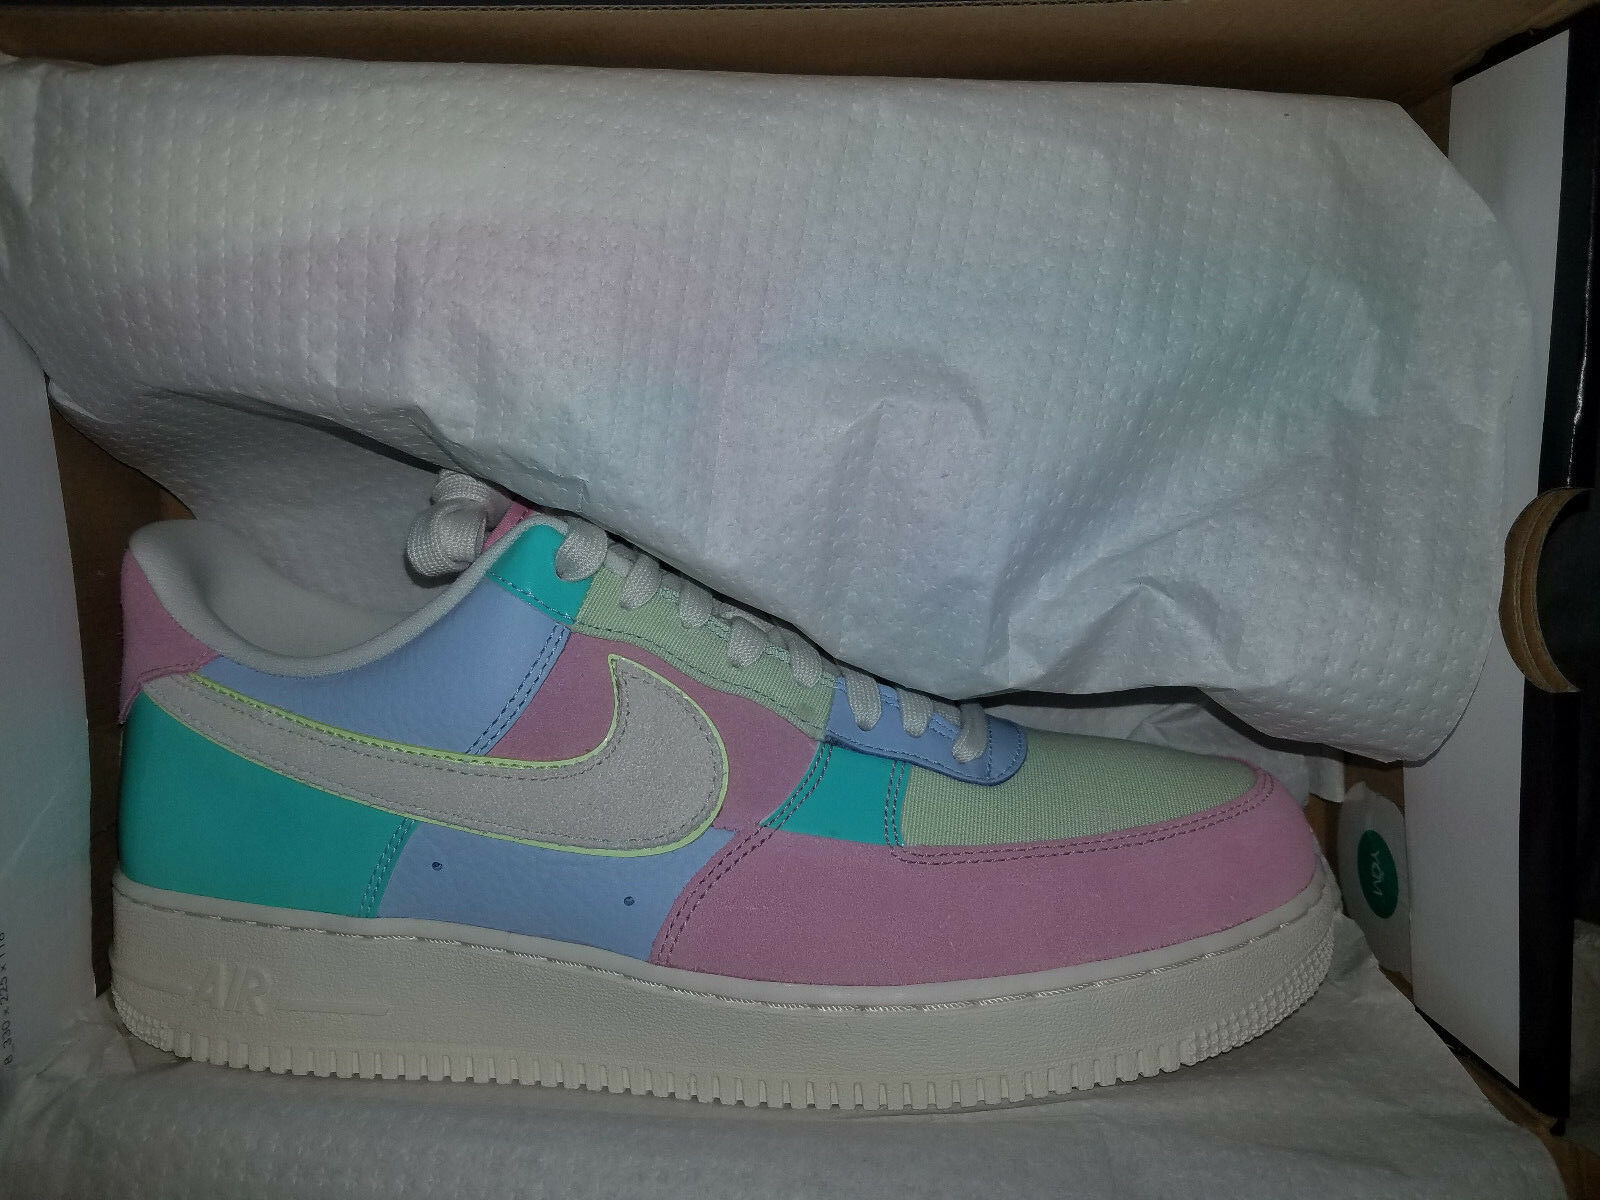 Nike Air Force 1 '07 QS Low Easter Deadstock New 2018 US size 11 Comfortable and good-looking